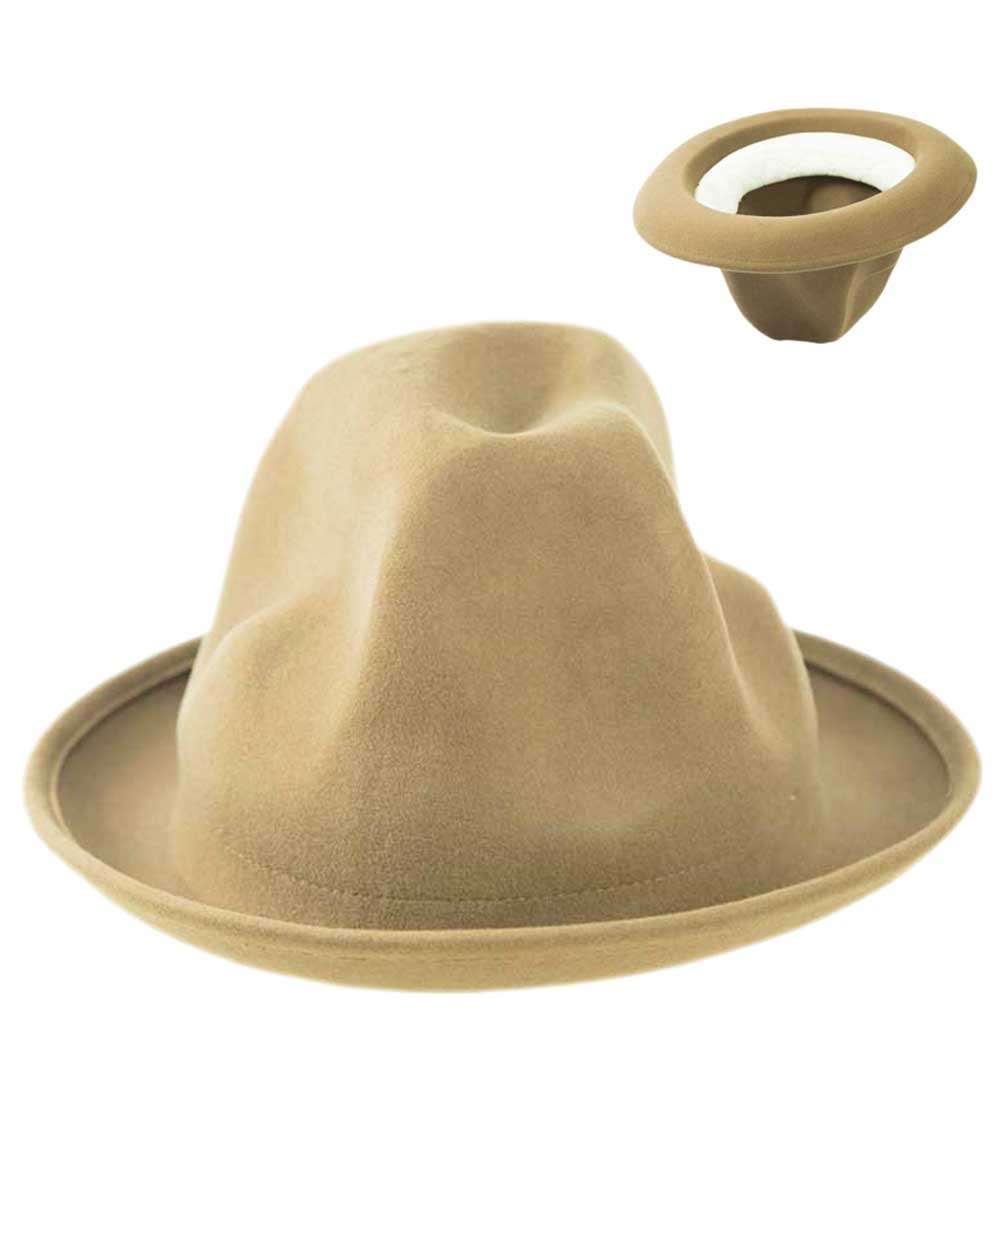 Oversized Mountain Hat odd shaped- Camel Brown